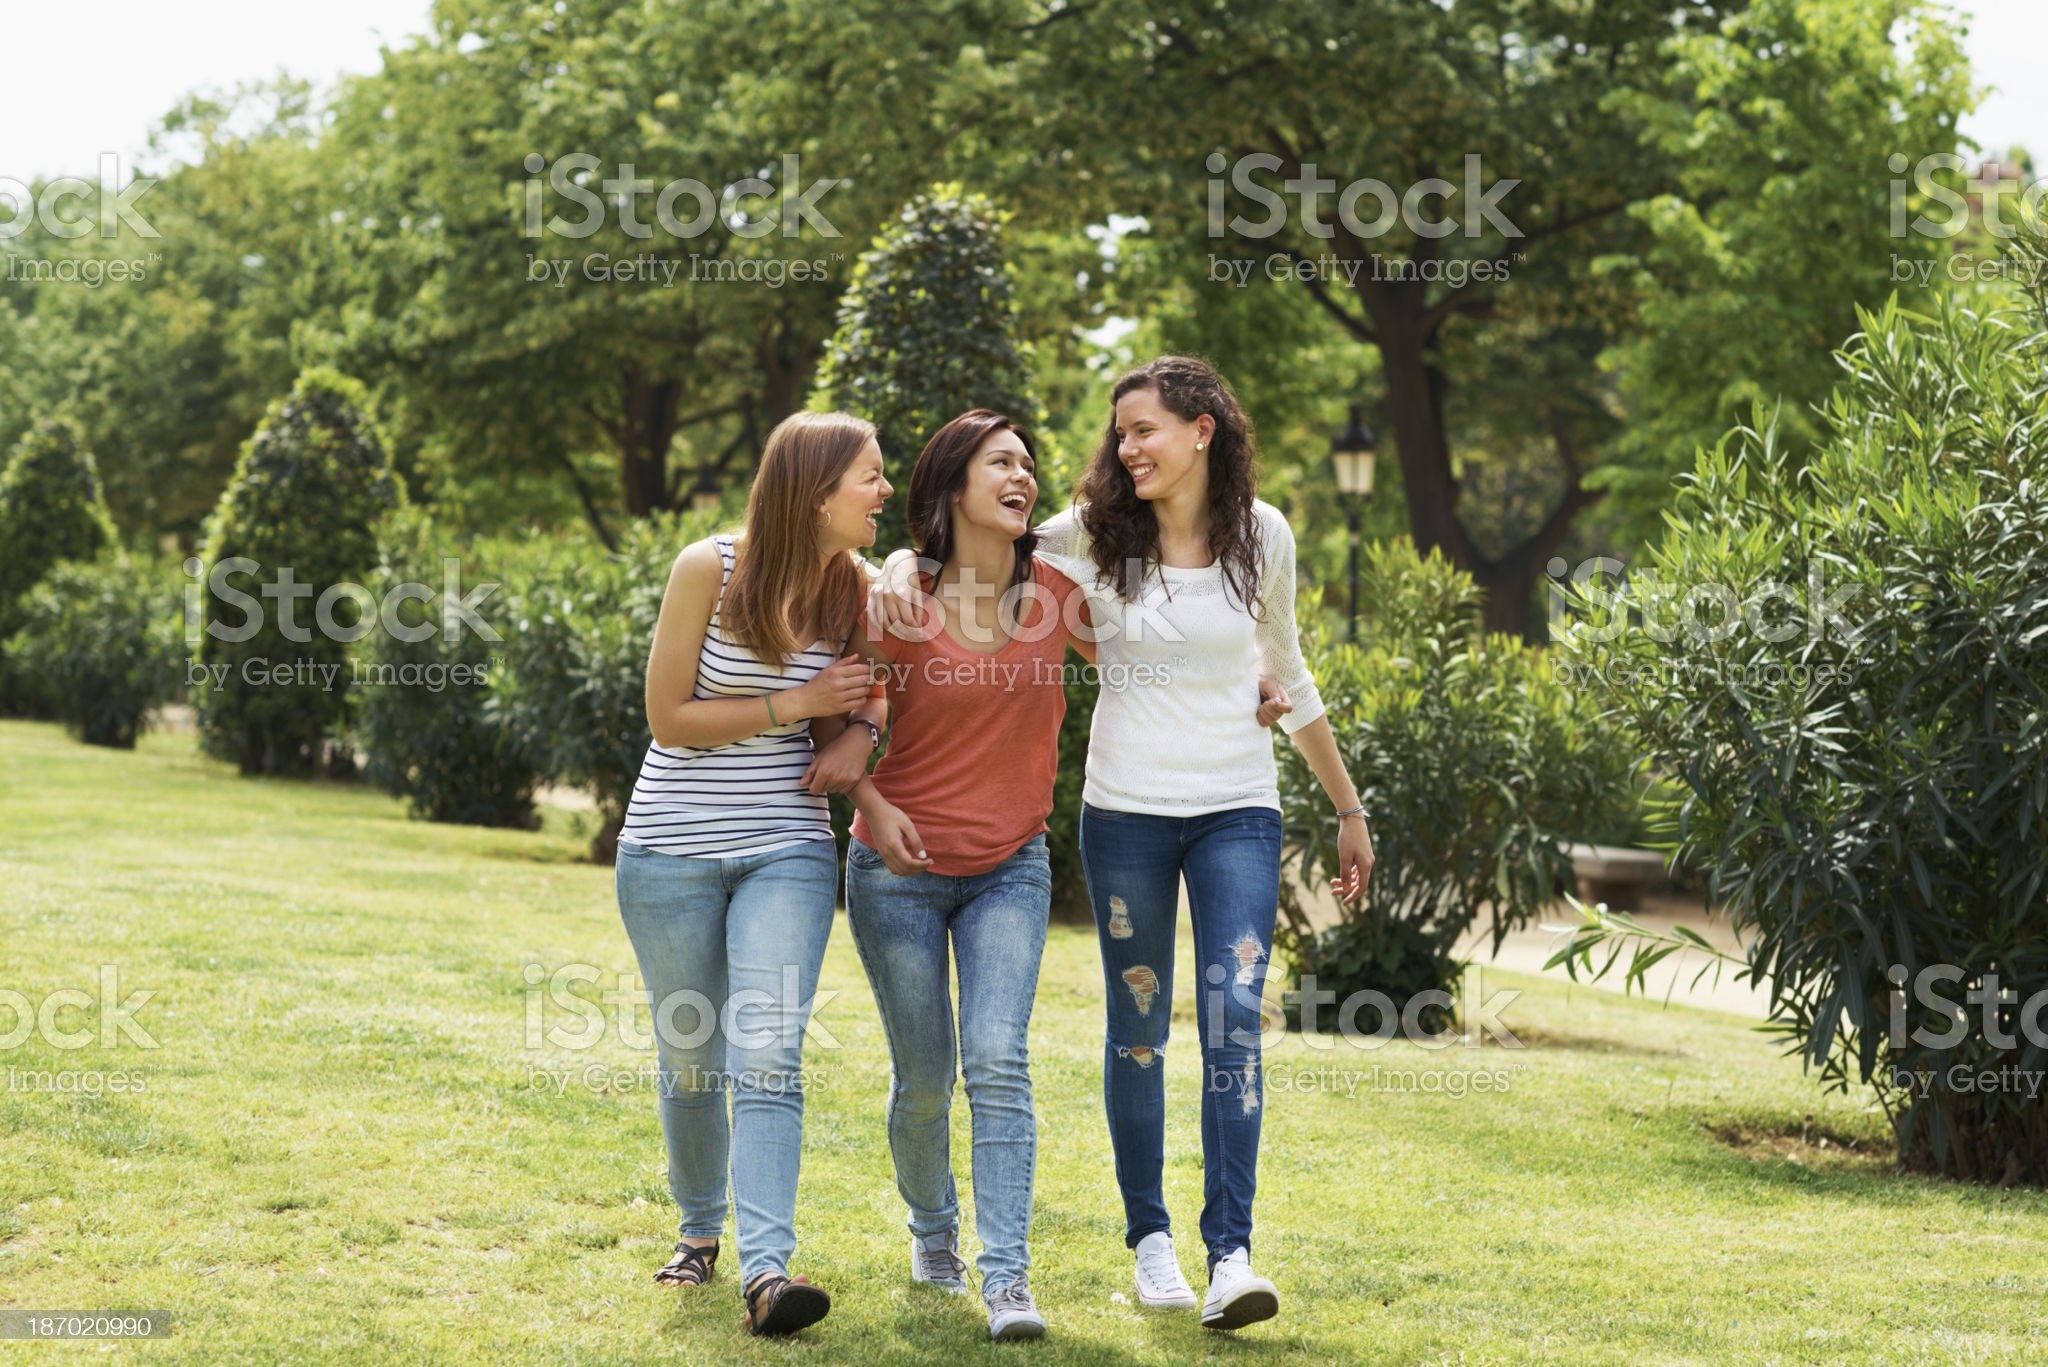 Strolling through the park royalty-free stock photo